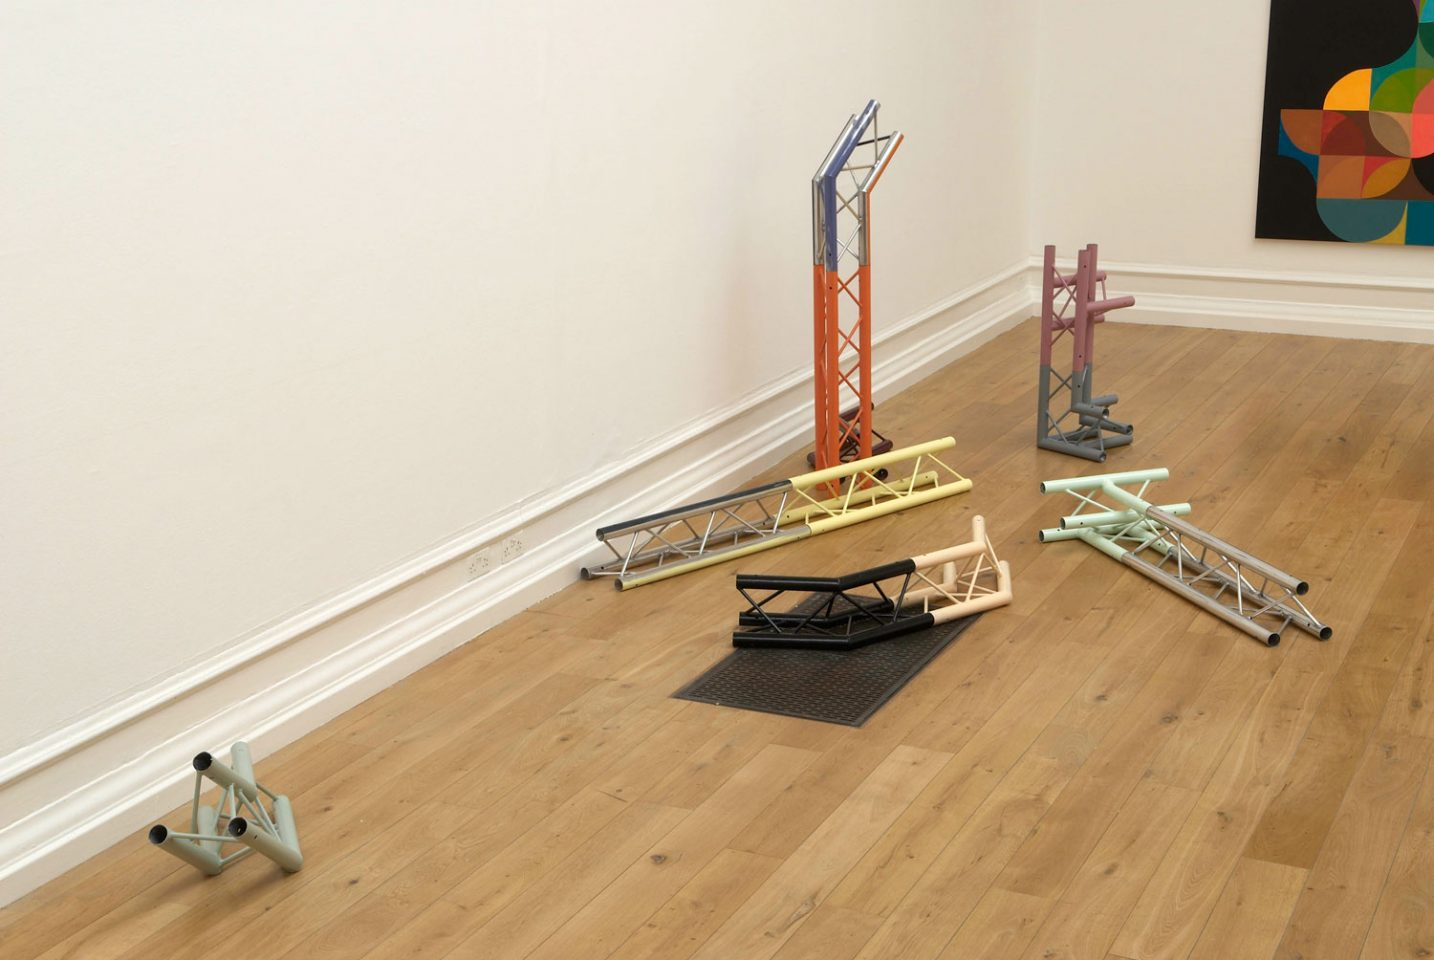 Installation view of Games & Theory, 2008. Photo: Andy Keate